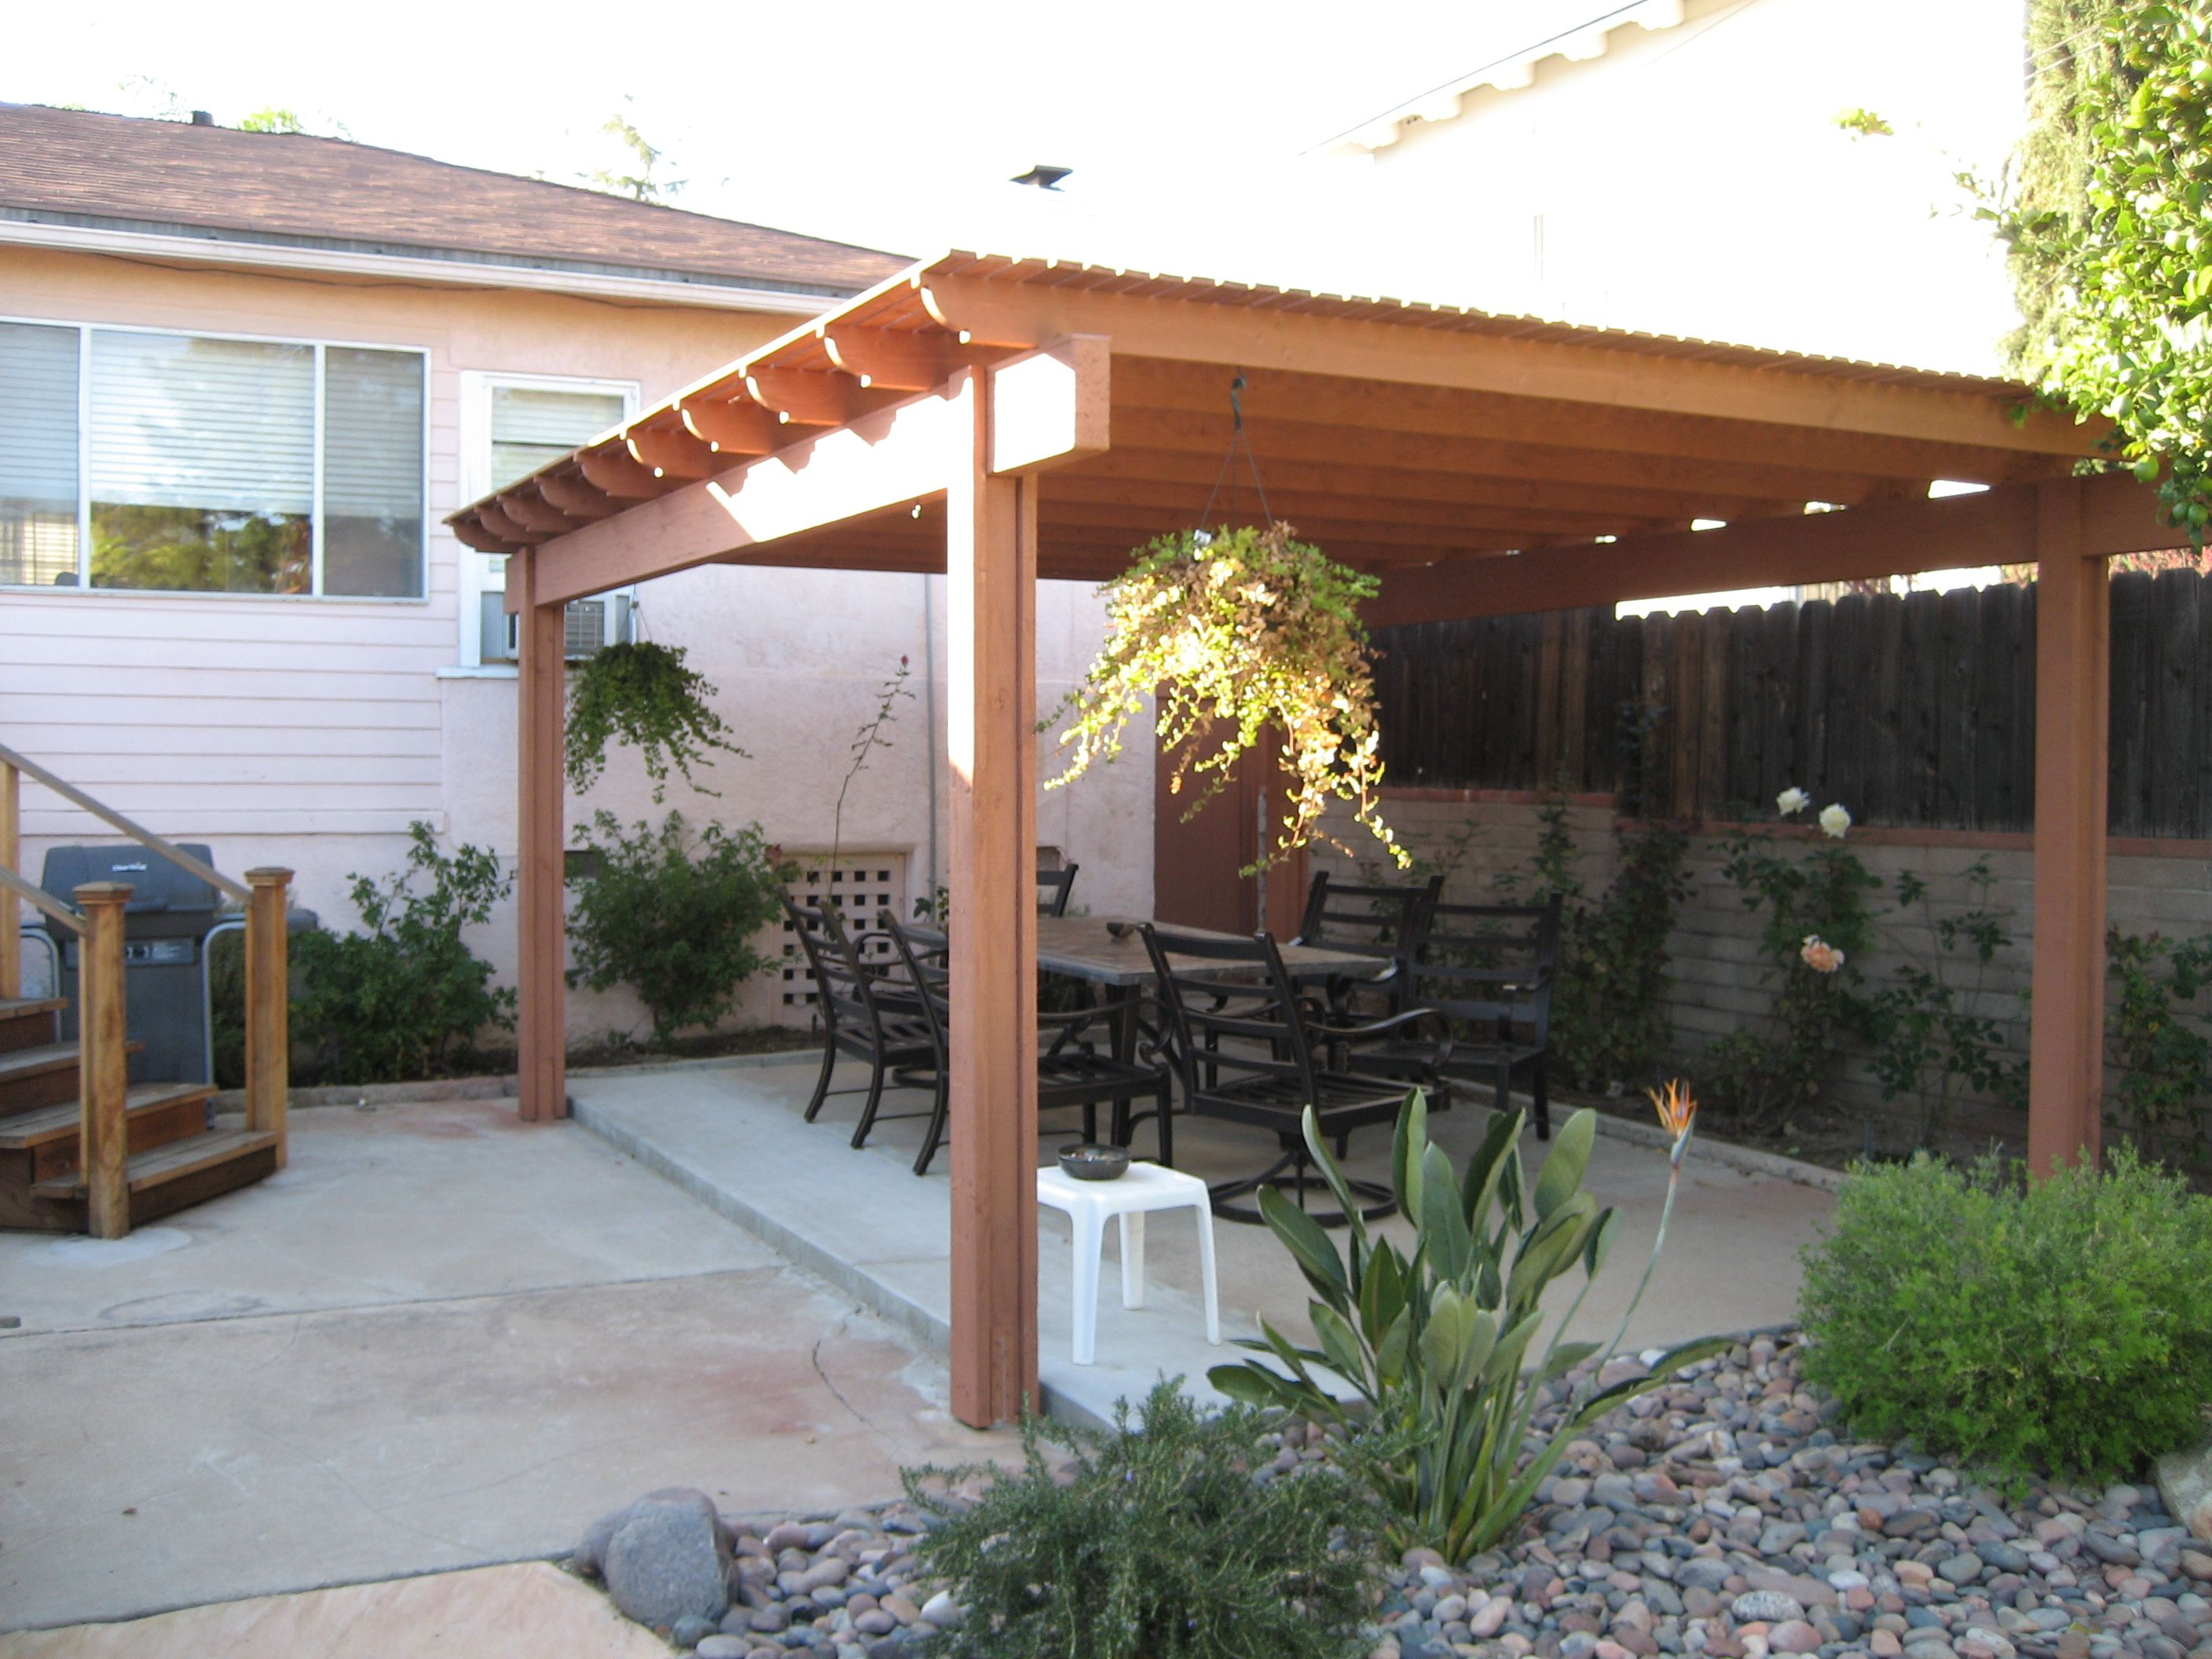 Covered patio designs pictures covered patio design 1049 for Decks and patios design ideas